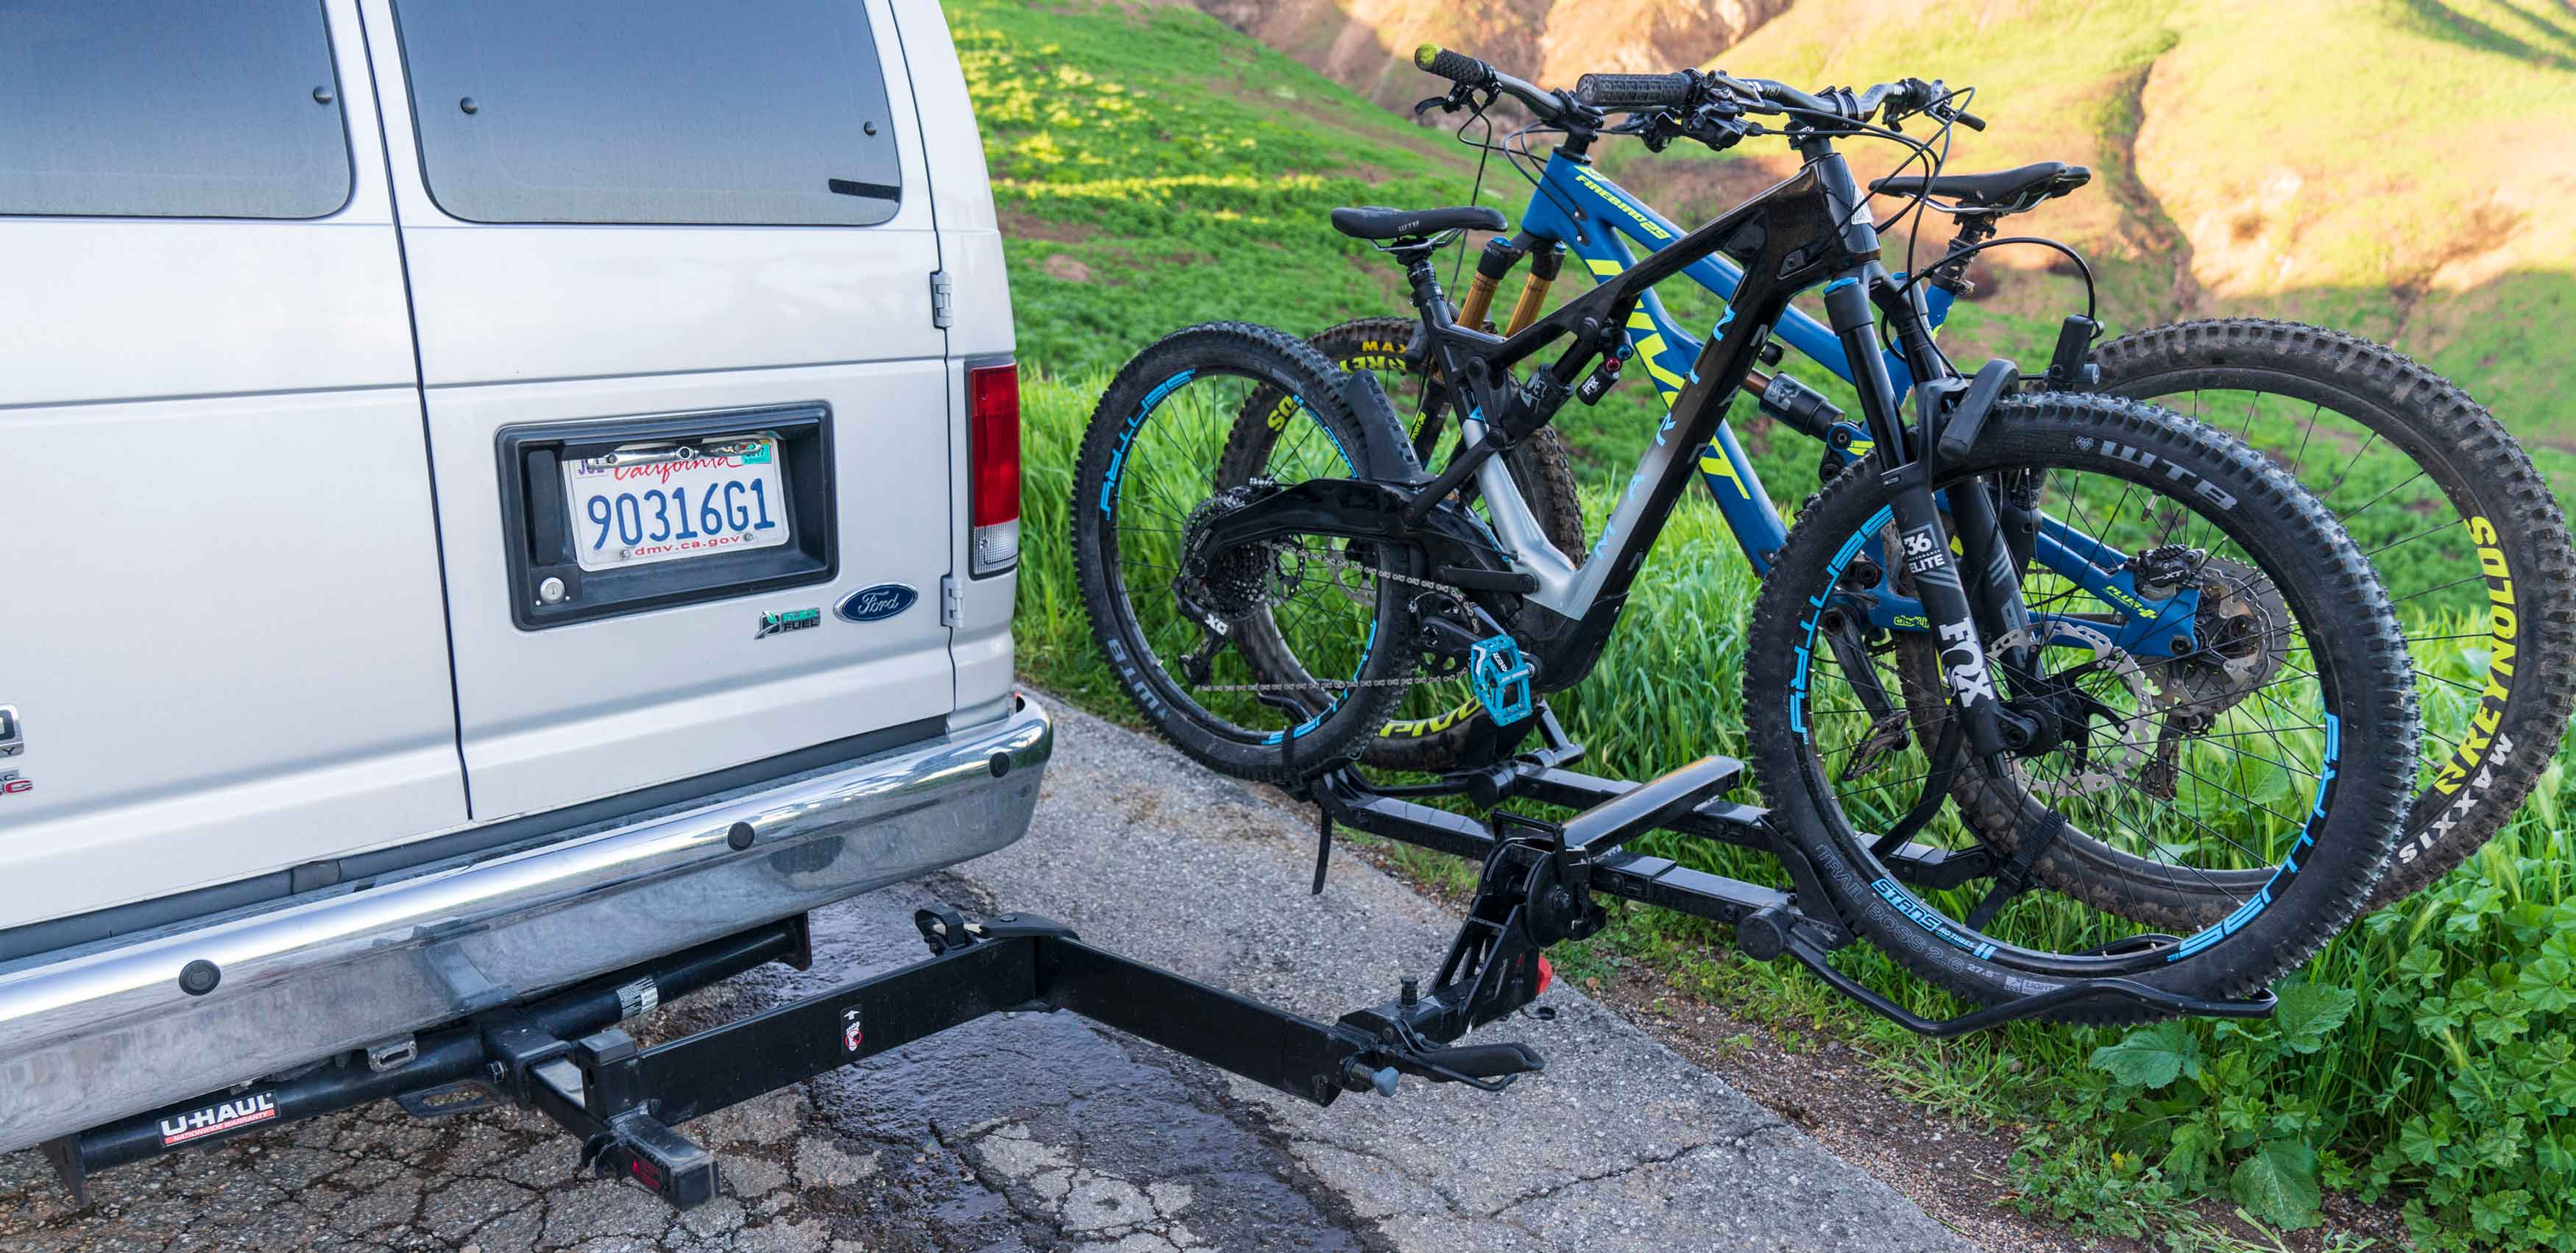 Review: Yakima HoldUp EVO bike rack and BackSwing Hitch